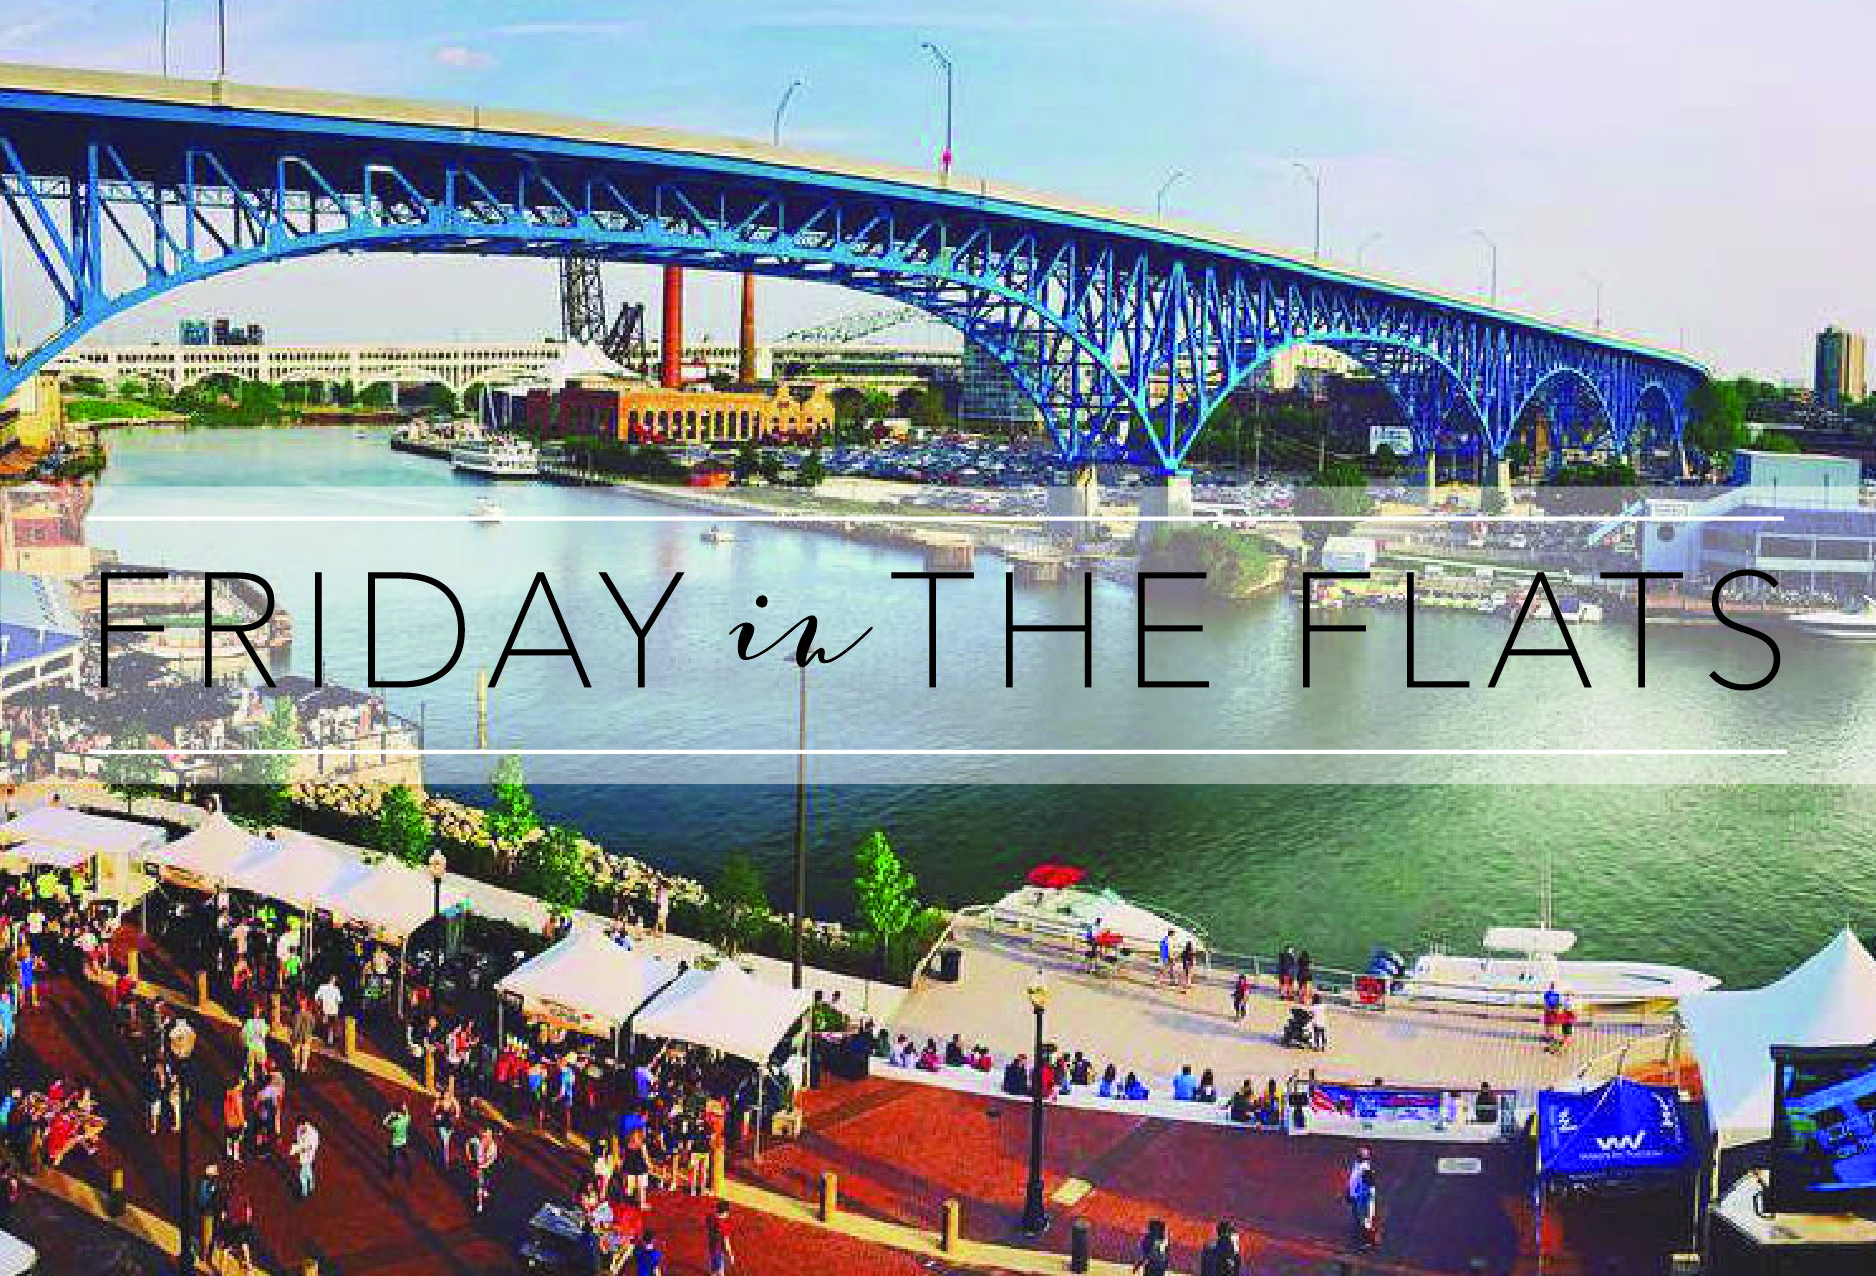 friday in the flats-01.jpg